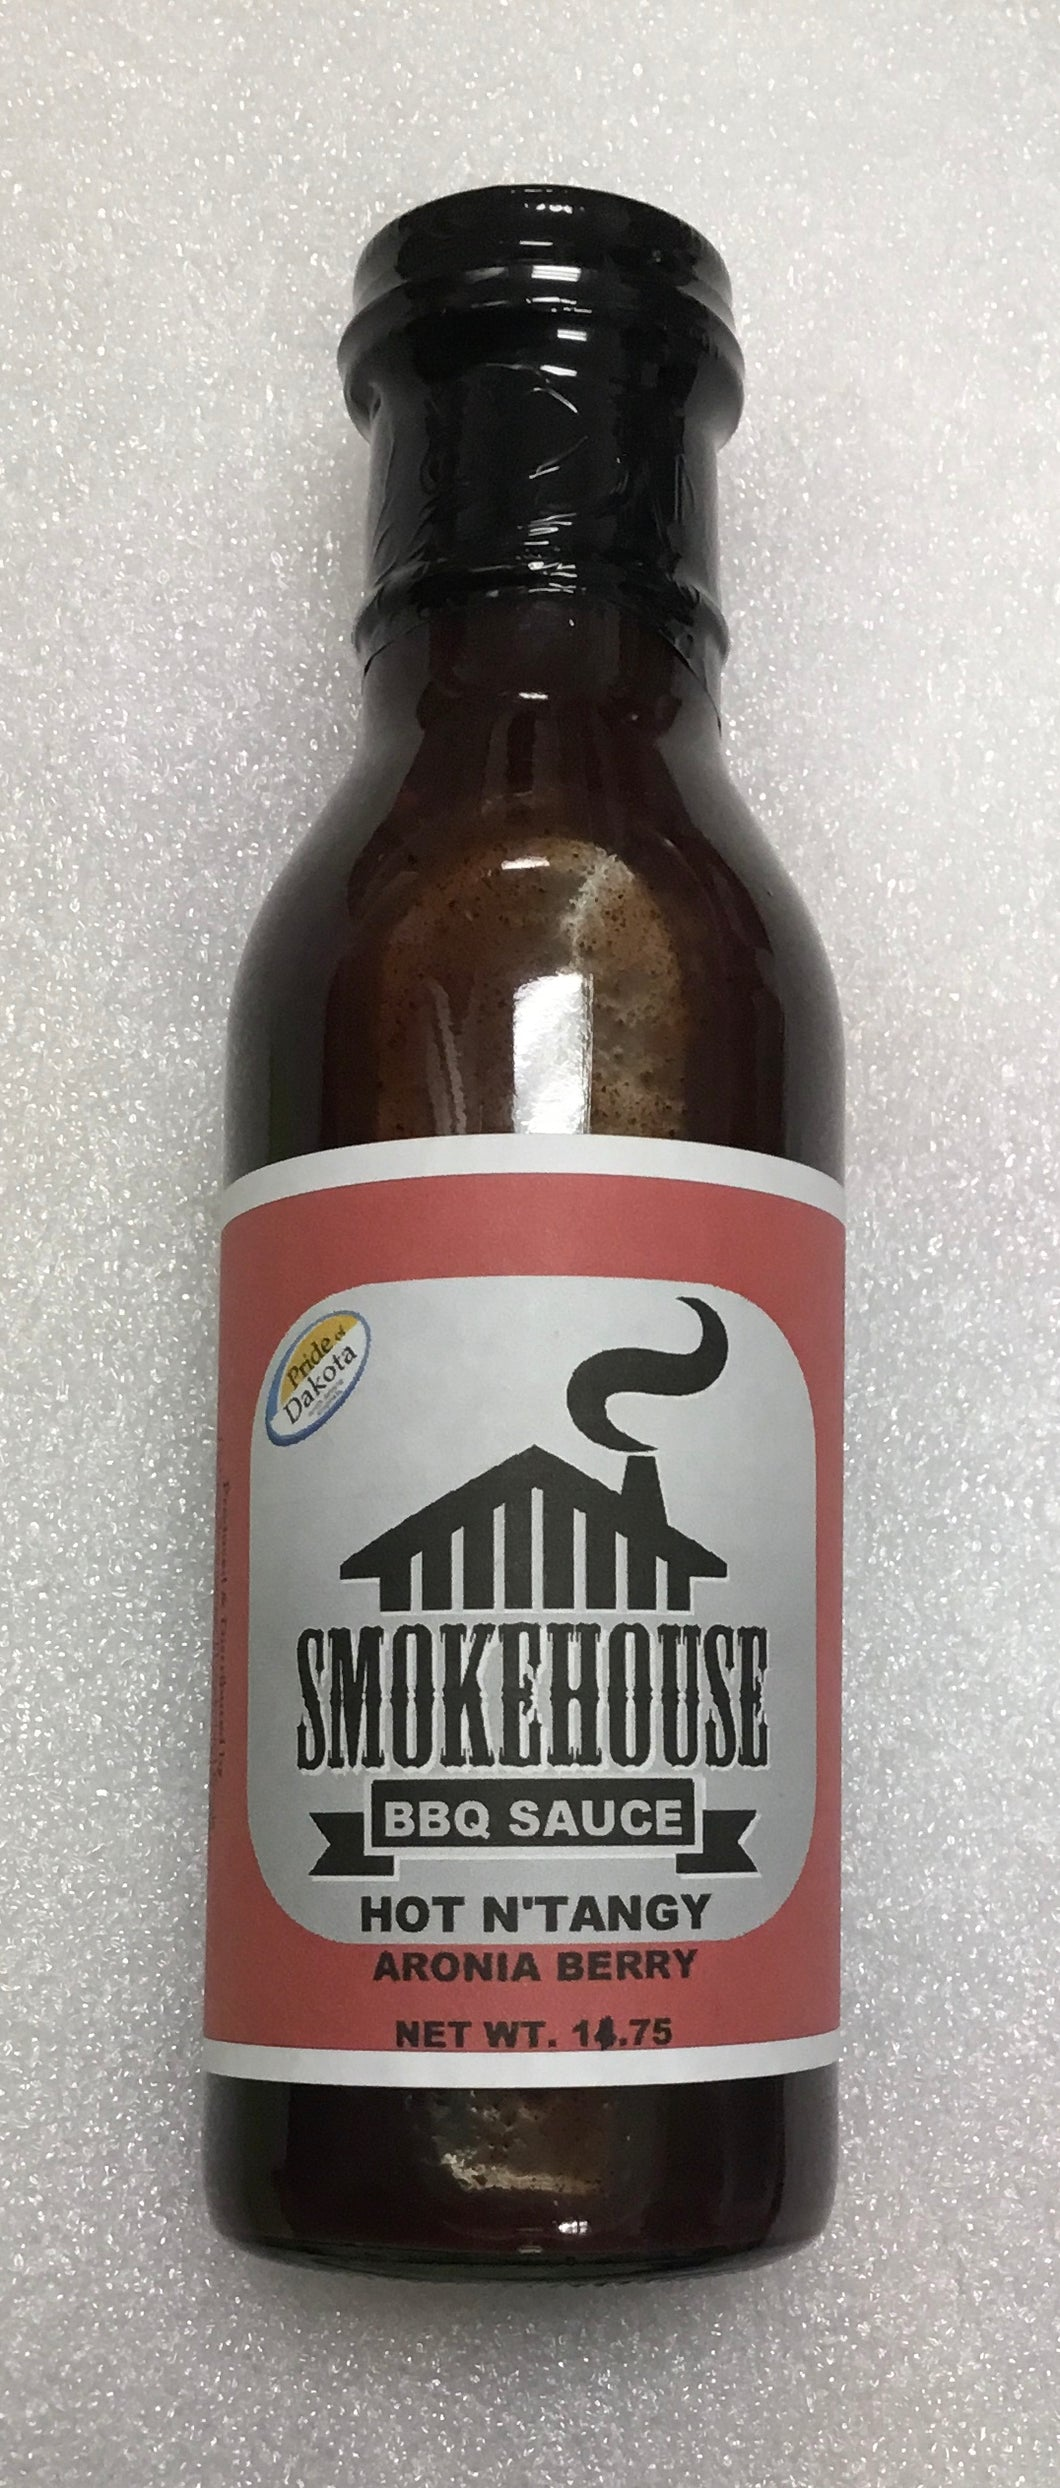 Smokehouse BBQ Sauce Hot N'Tangy Aronia Berry